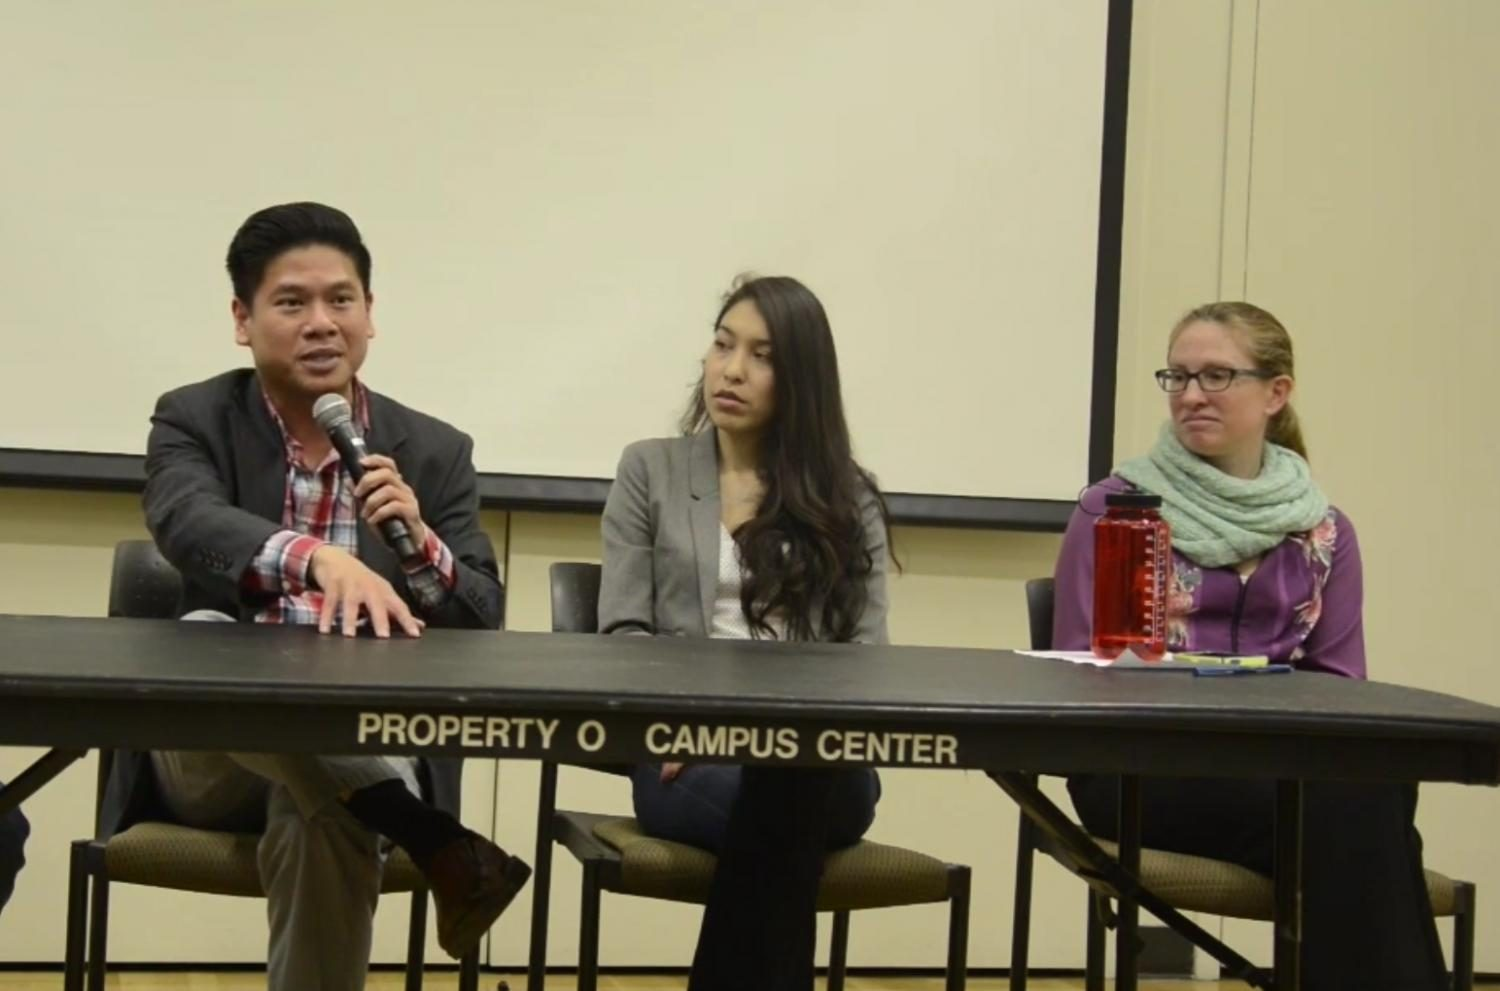 Panel+organized+by+De+Anza+Renters+Rights+Campaign%2C+featuring+Councilman+Lan+Diep.